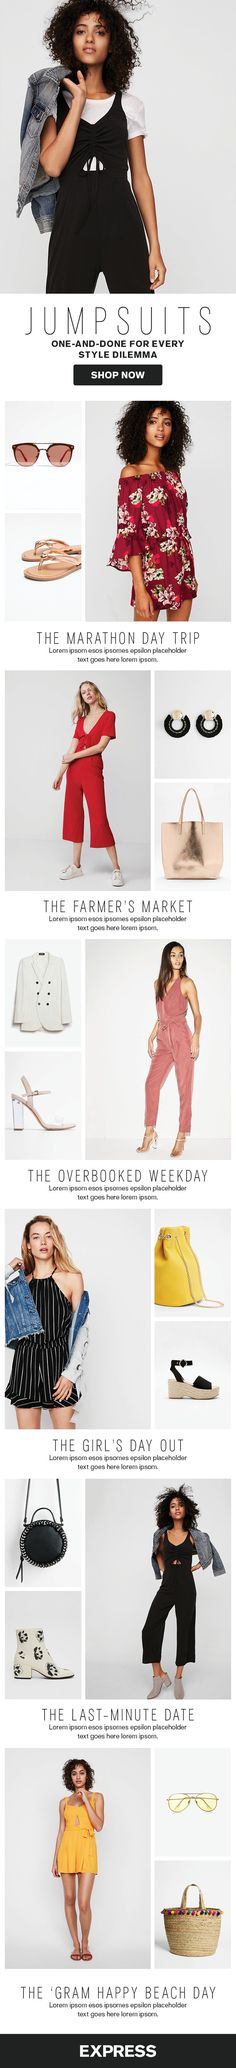 Need a date night outfit? Looking for a new look to wear to work? Solve any wardrobe crisis with an effortlessly chic one-and-done jumpsuit from the Express Spring collection. Read more at express.com/blog.